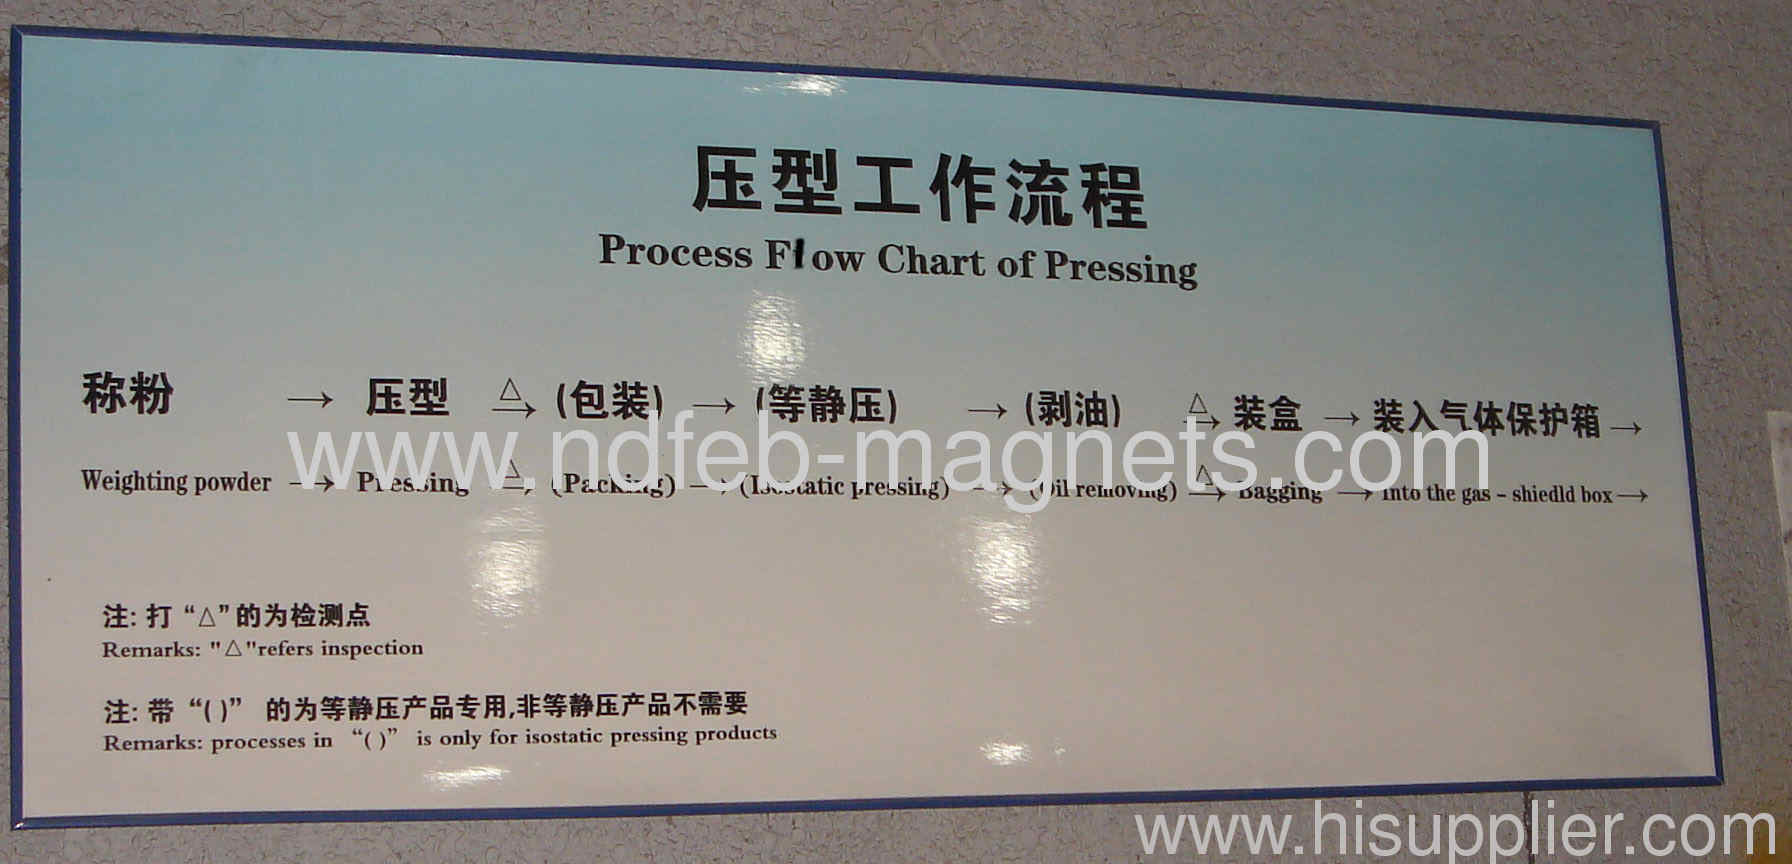 3 Process flow chart of pressing